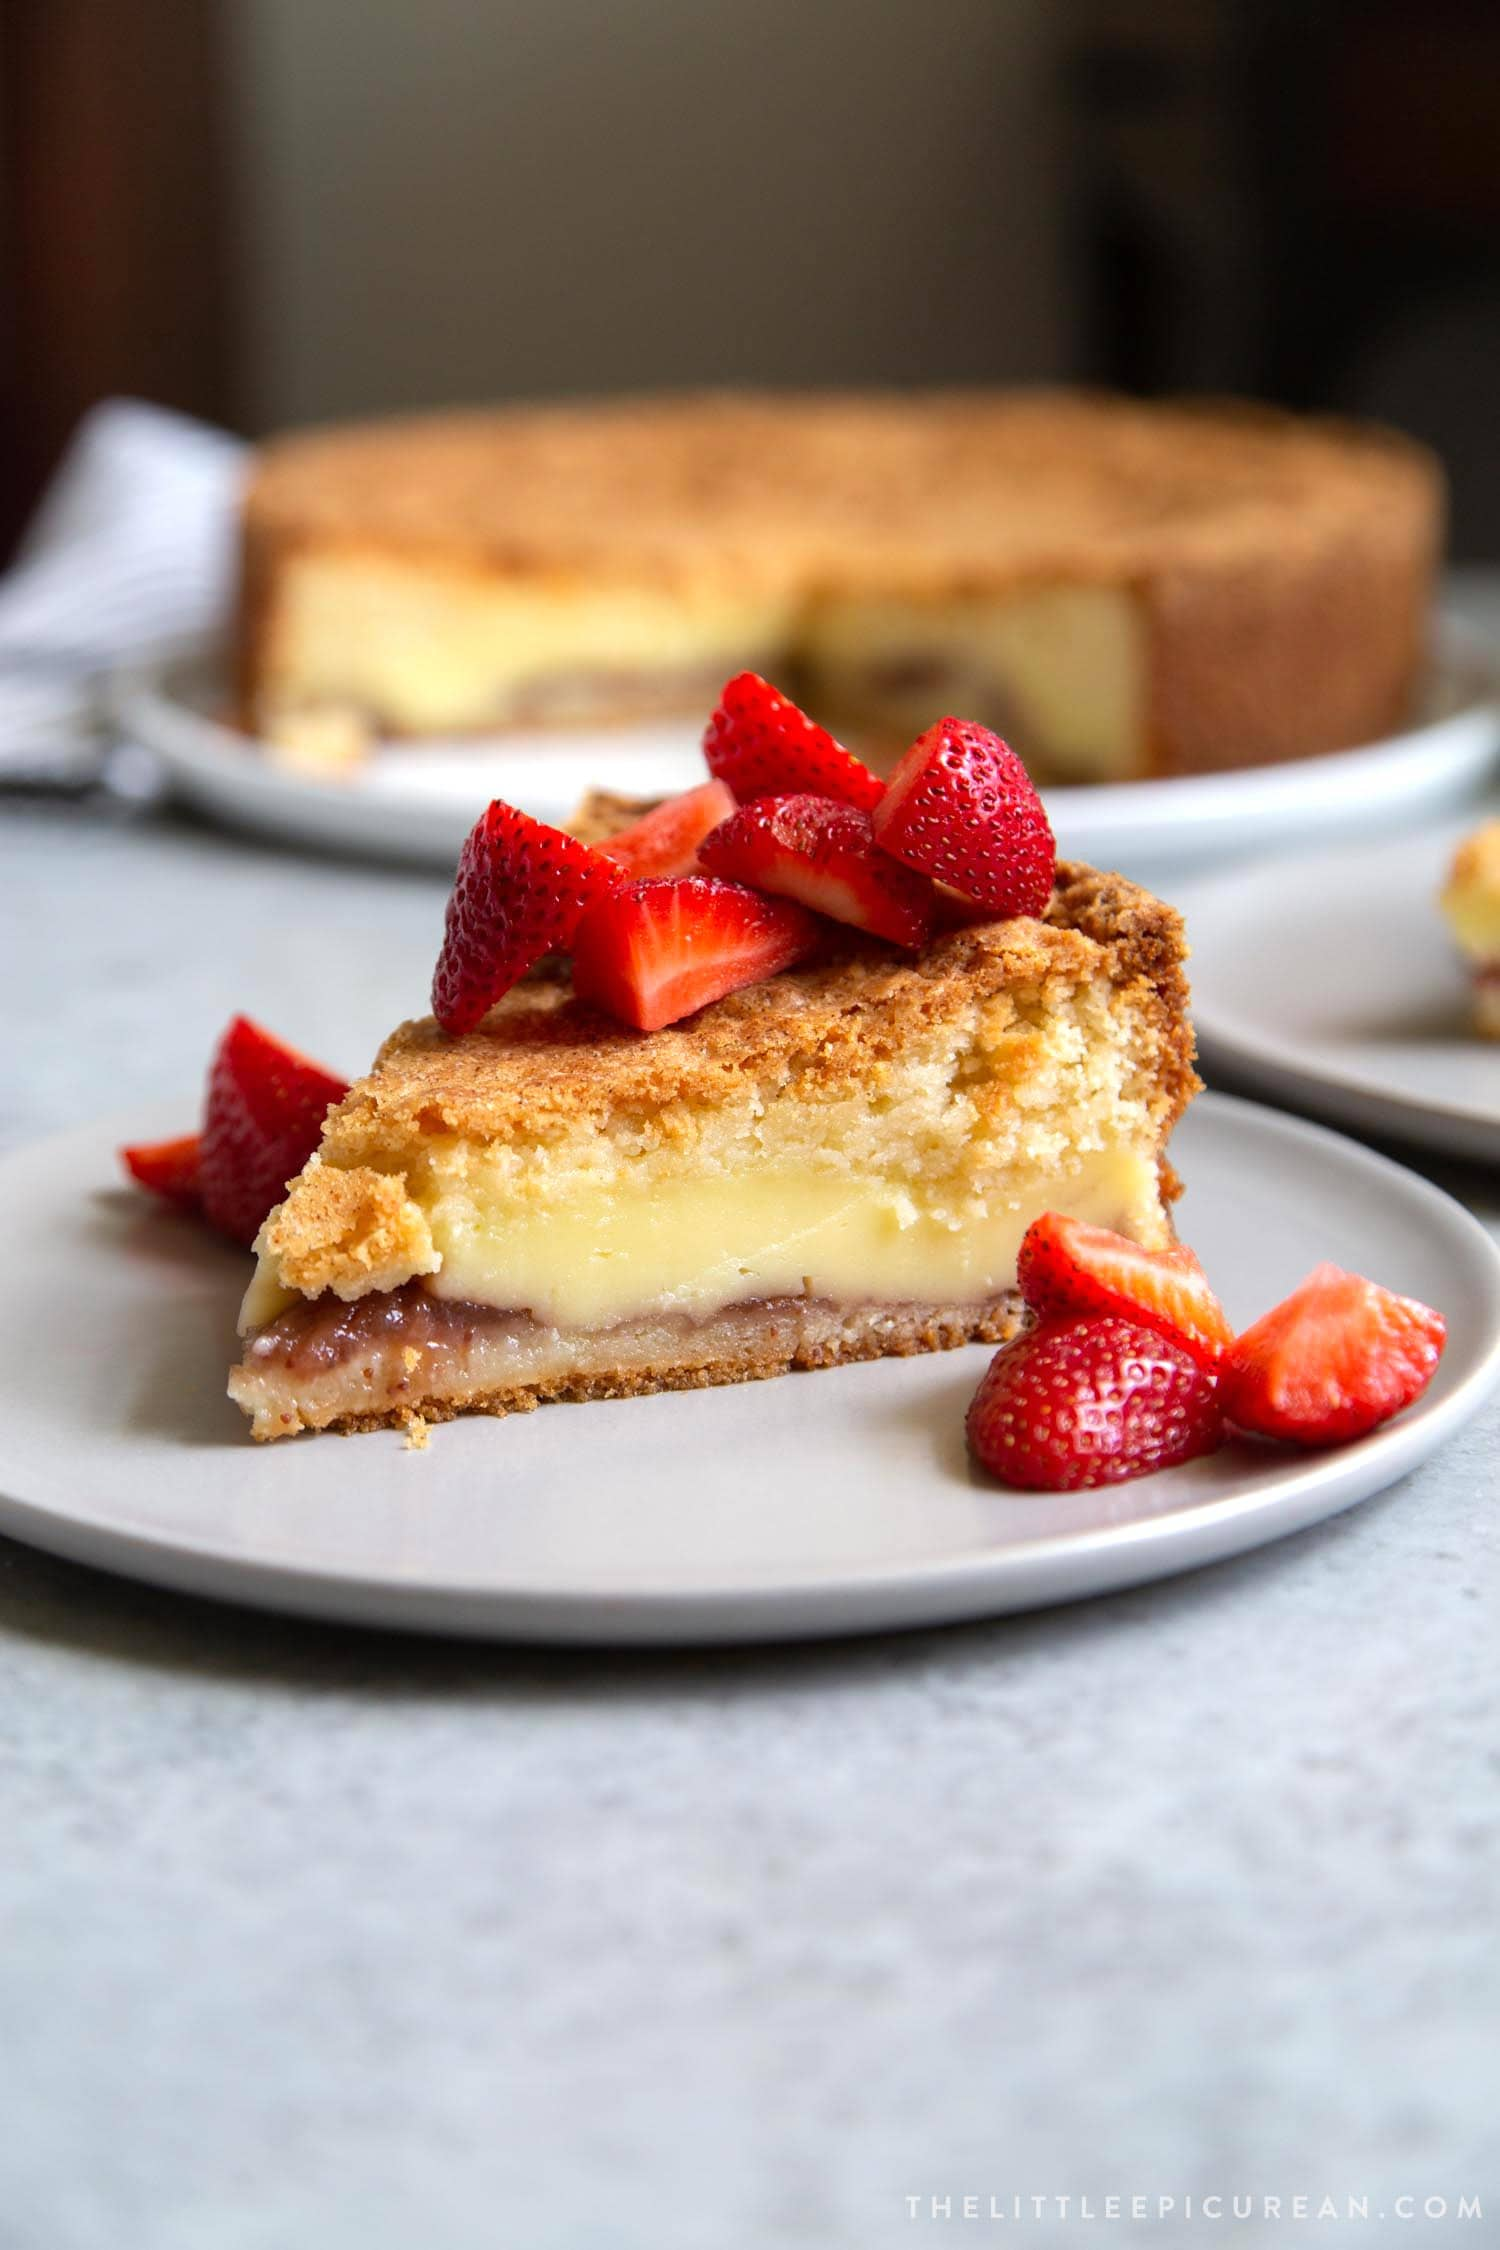 Slice of Basque Cake topped with fresh strawberries. Basque Cake is a buttery cake with strawberry jam and pastry cream filling.